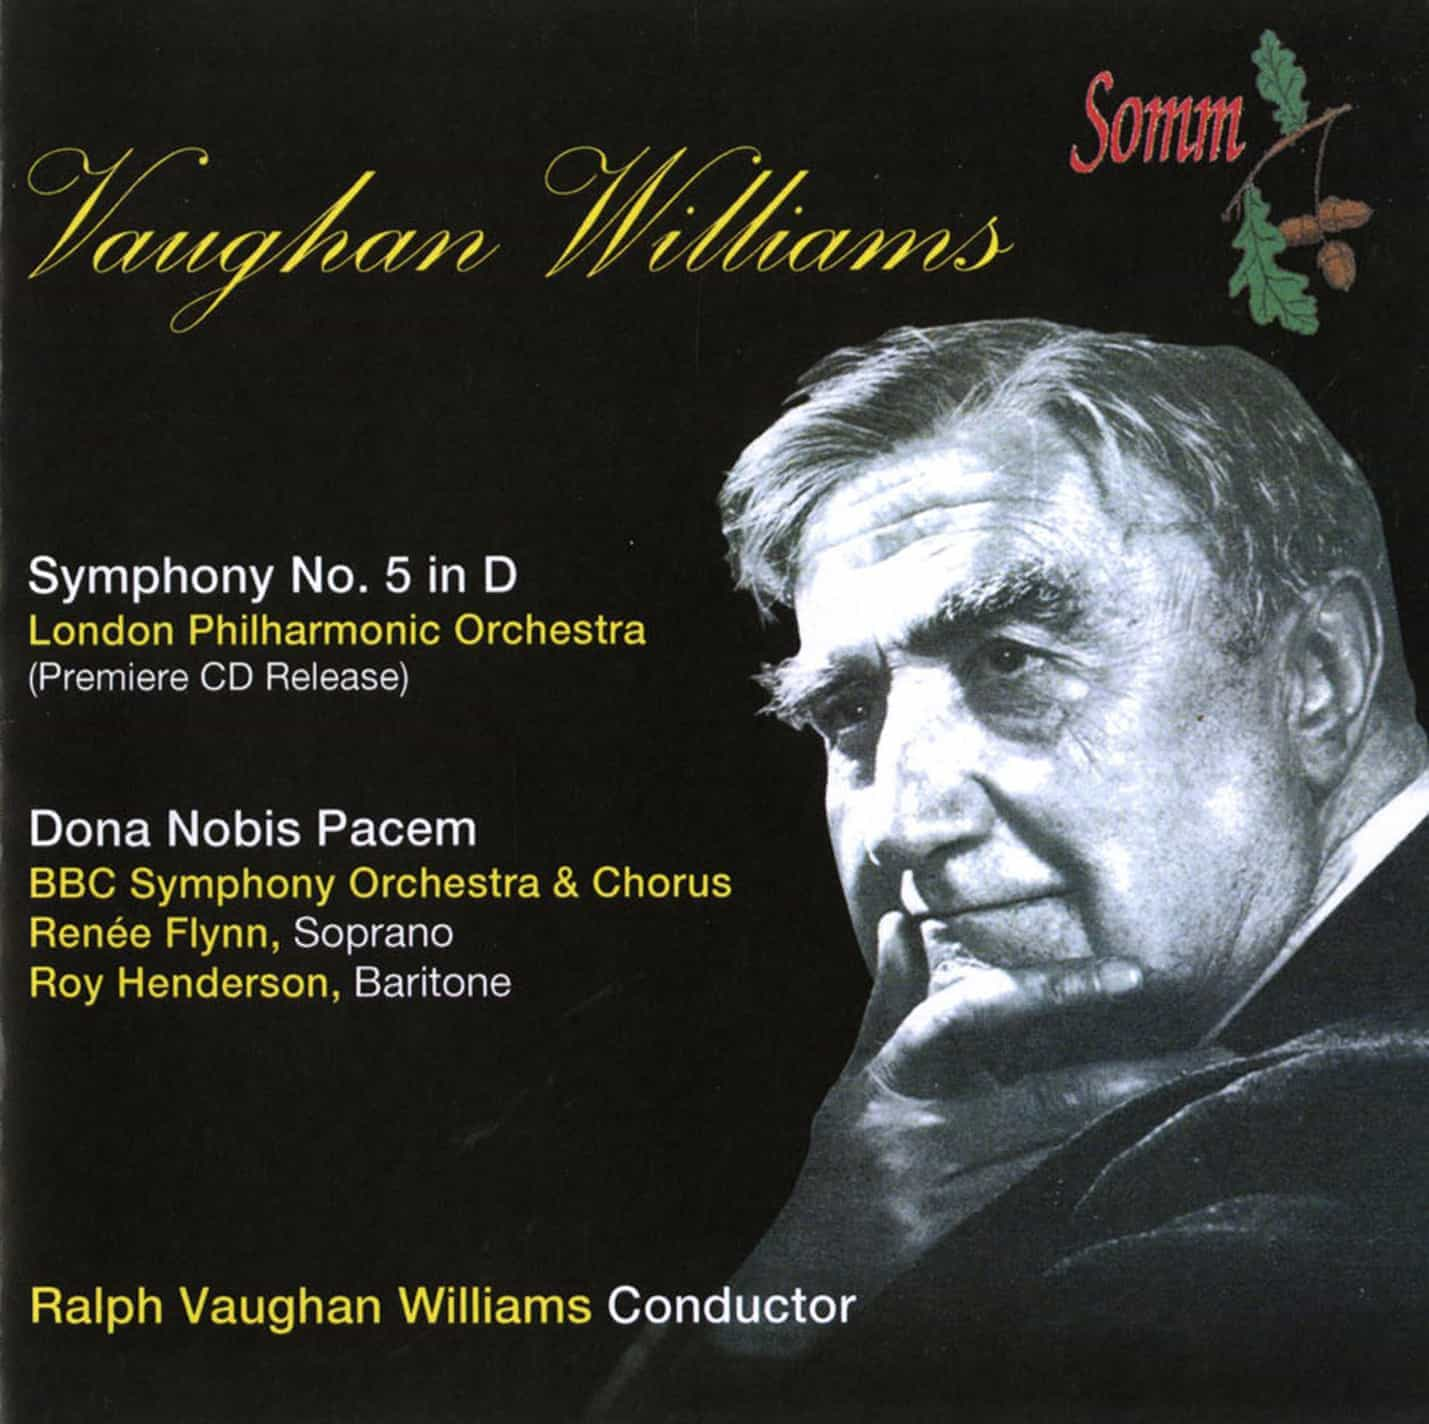 vaughan williams symphony 5 essay Download thesis statement on ralph vaughan williams - symphony no 5 in our database or order an original thesis paper that will be written by one of our staff.